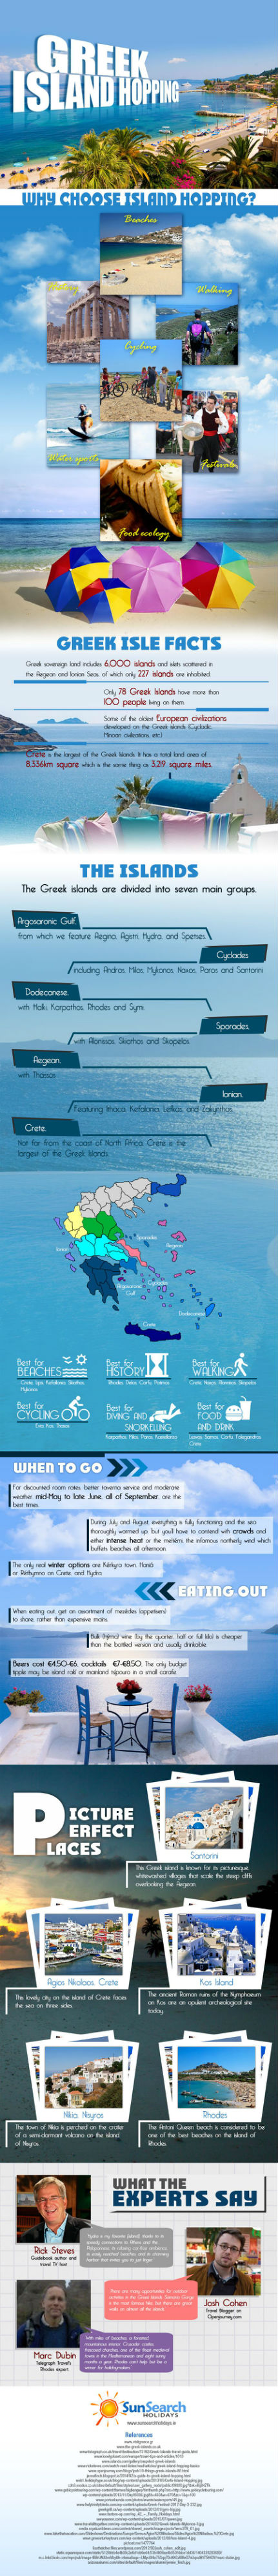 Greek Island Hopping [Infographic]